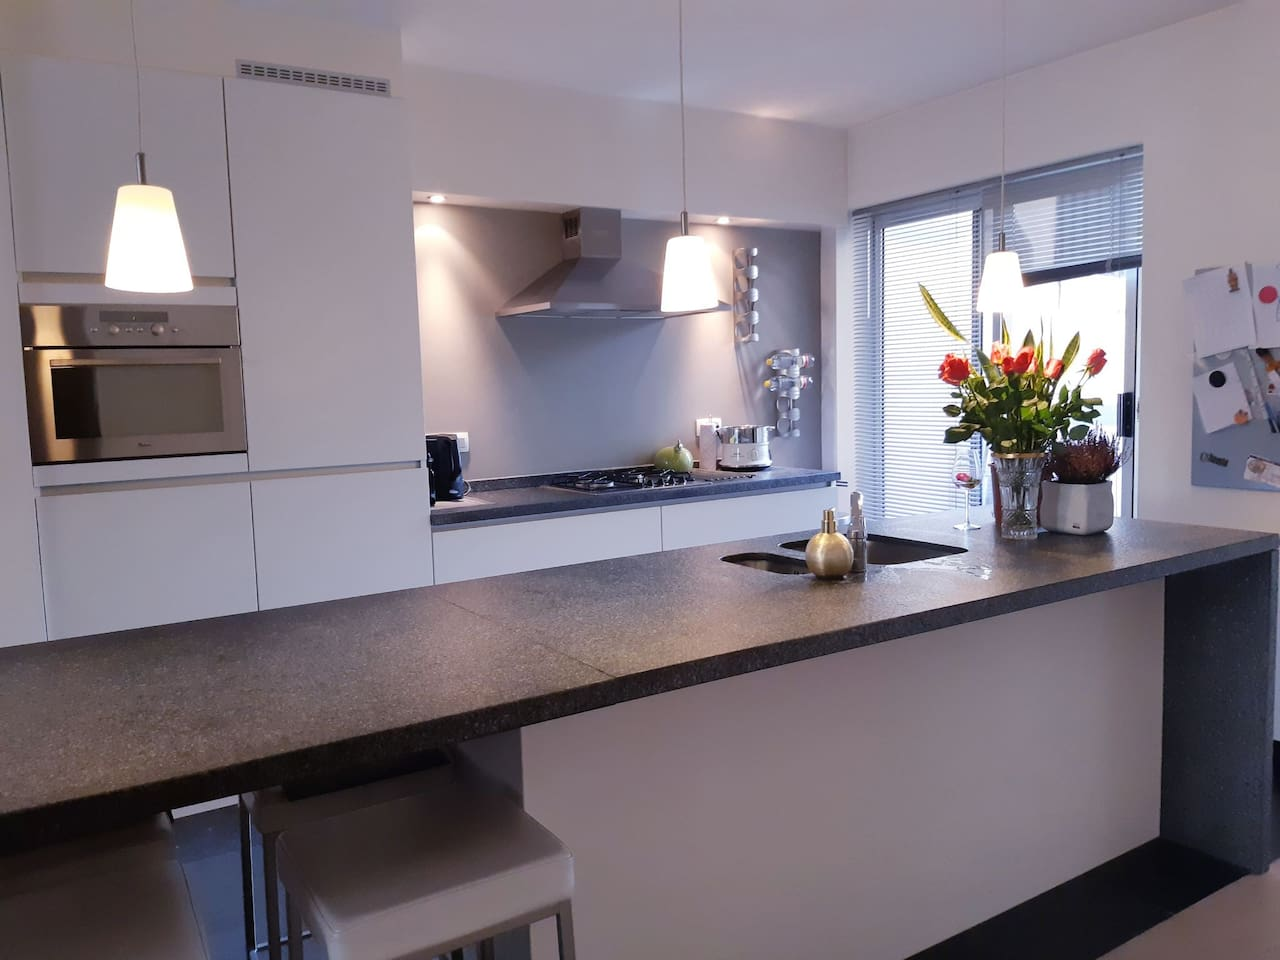 Fully equipped kitchen: steam cook, oven, micro-wave, stove, fridge, pots & pans, ....